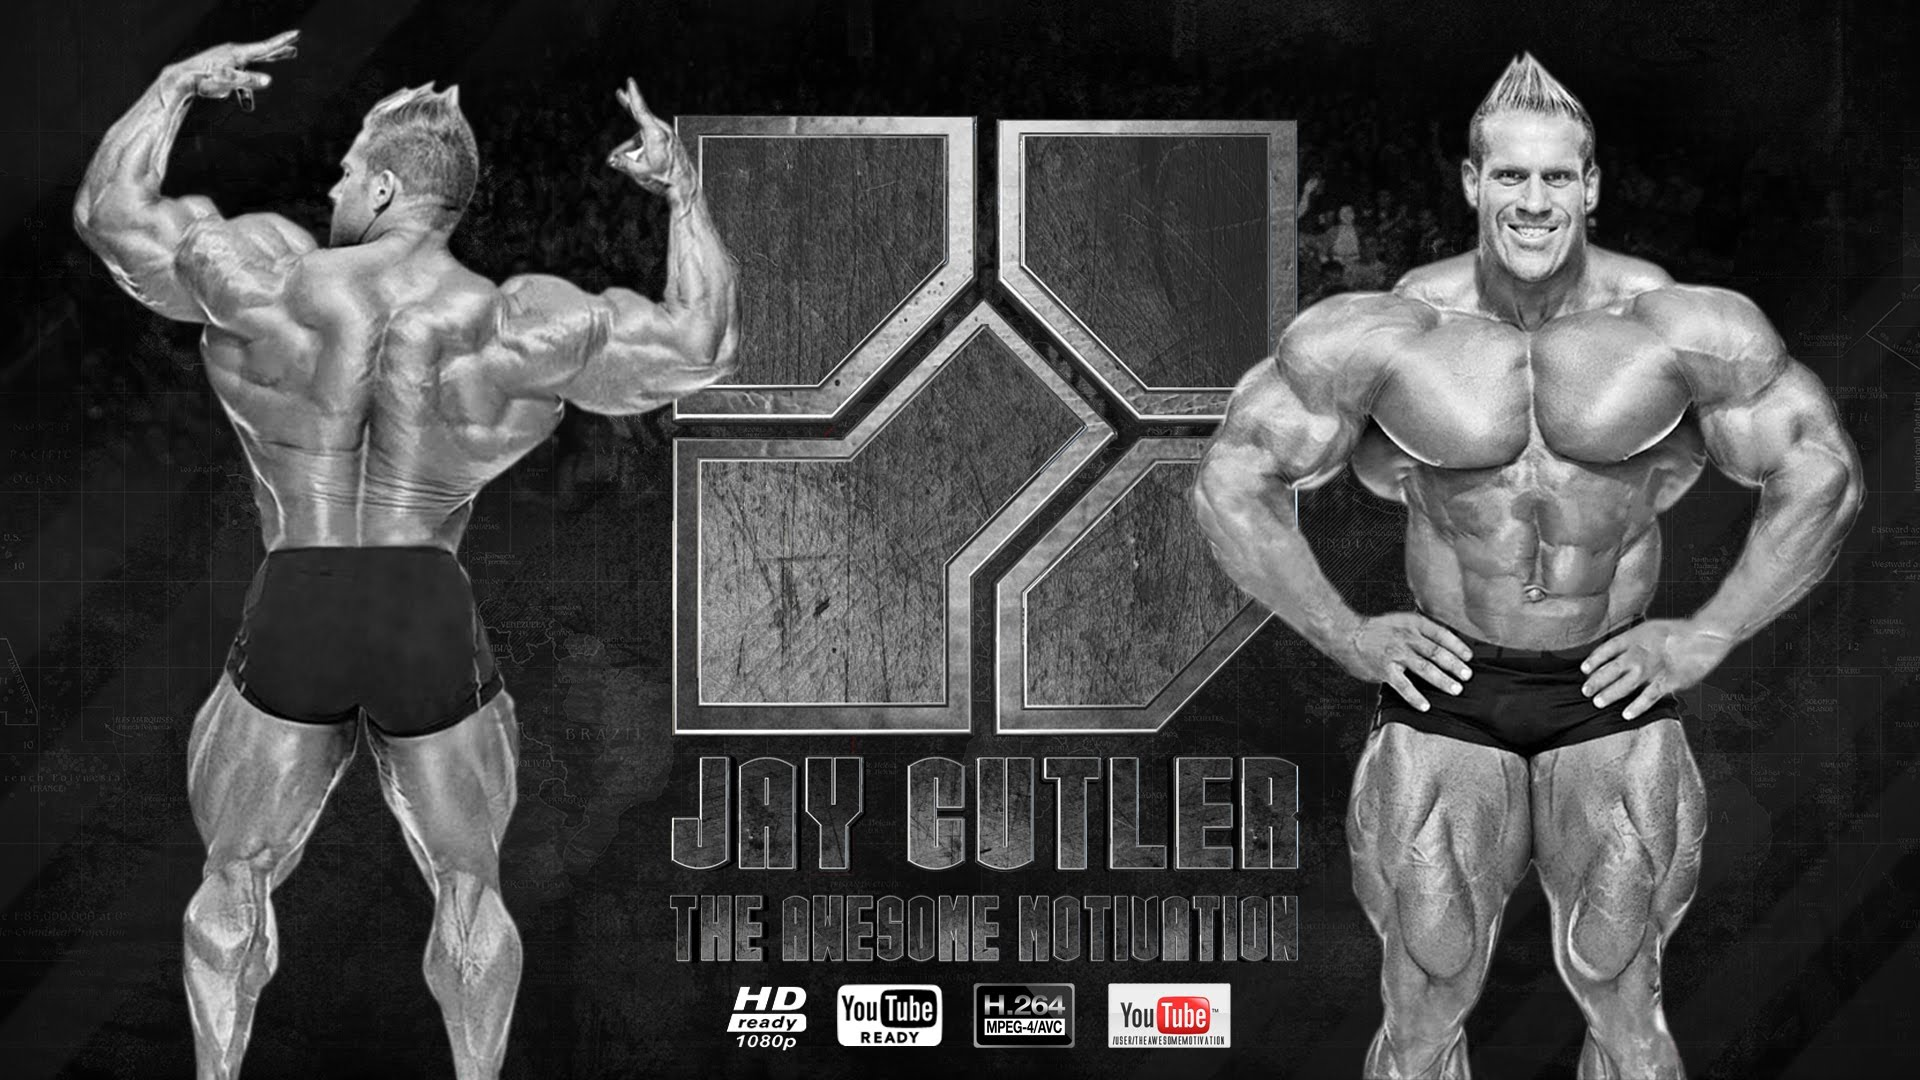 Jay Cutler Bodybuilding motivation (The Awesome Motivation)